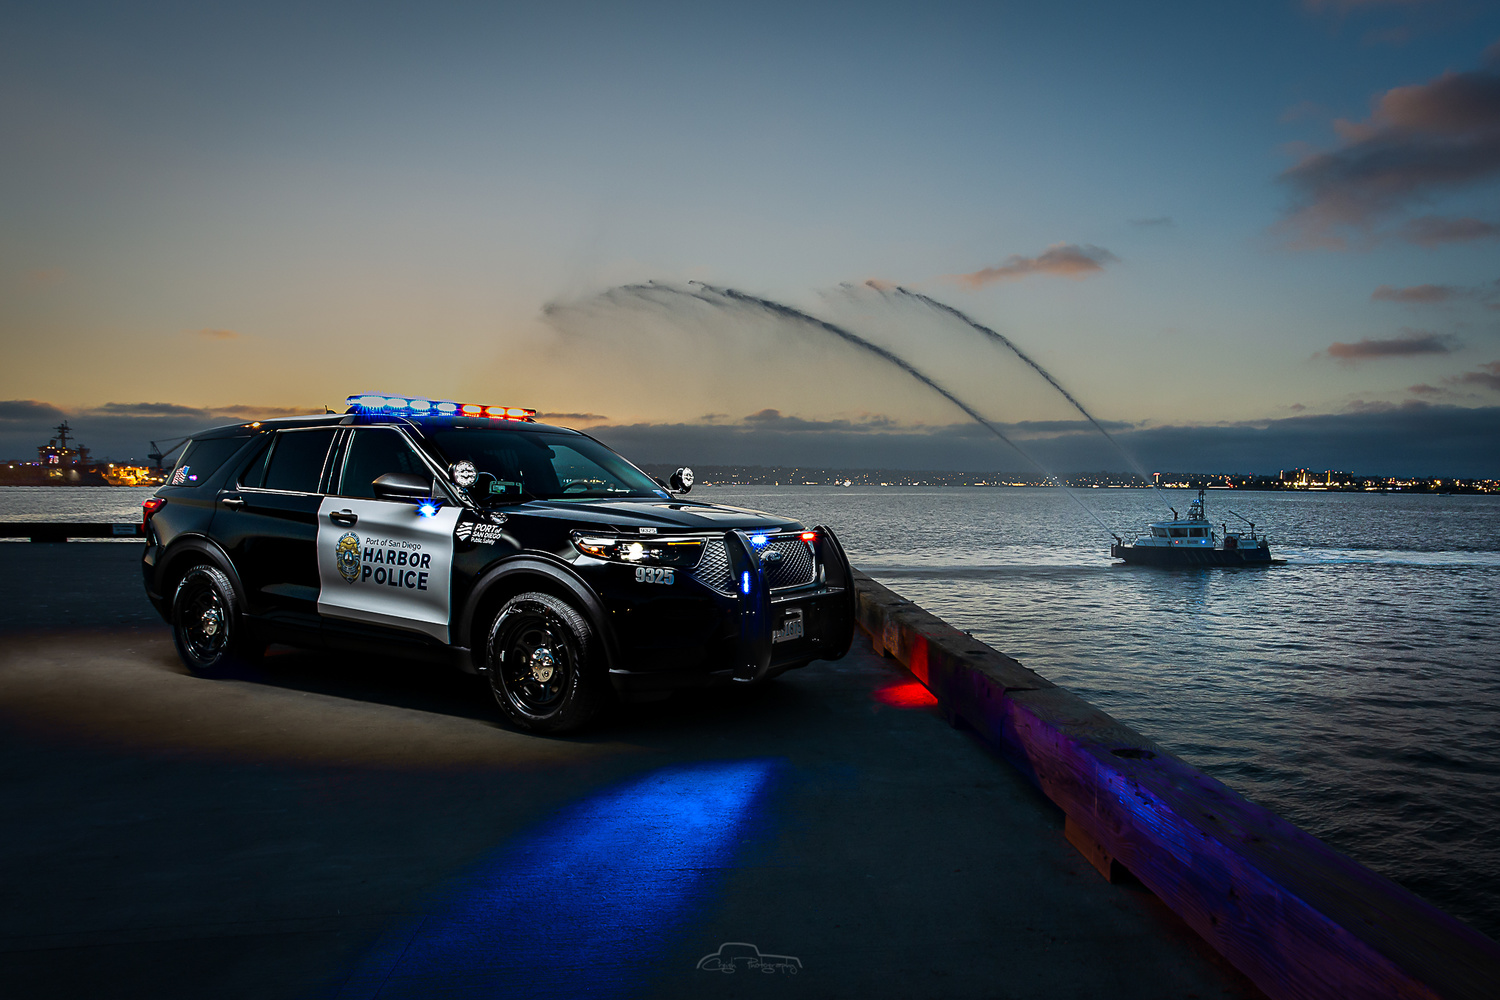 San Diego Harbor Police with Fire Boat by Creigh McIntyre